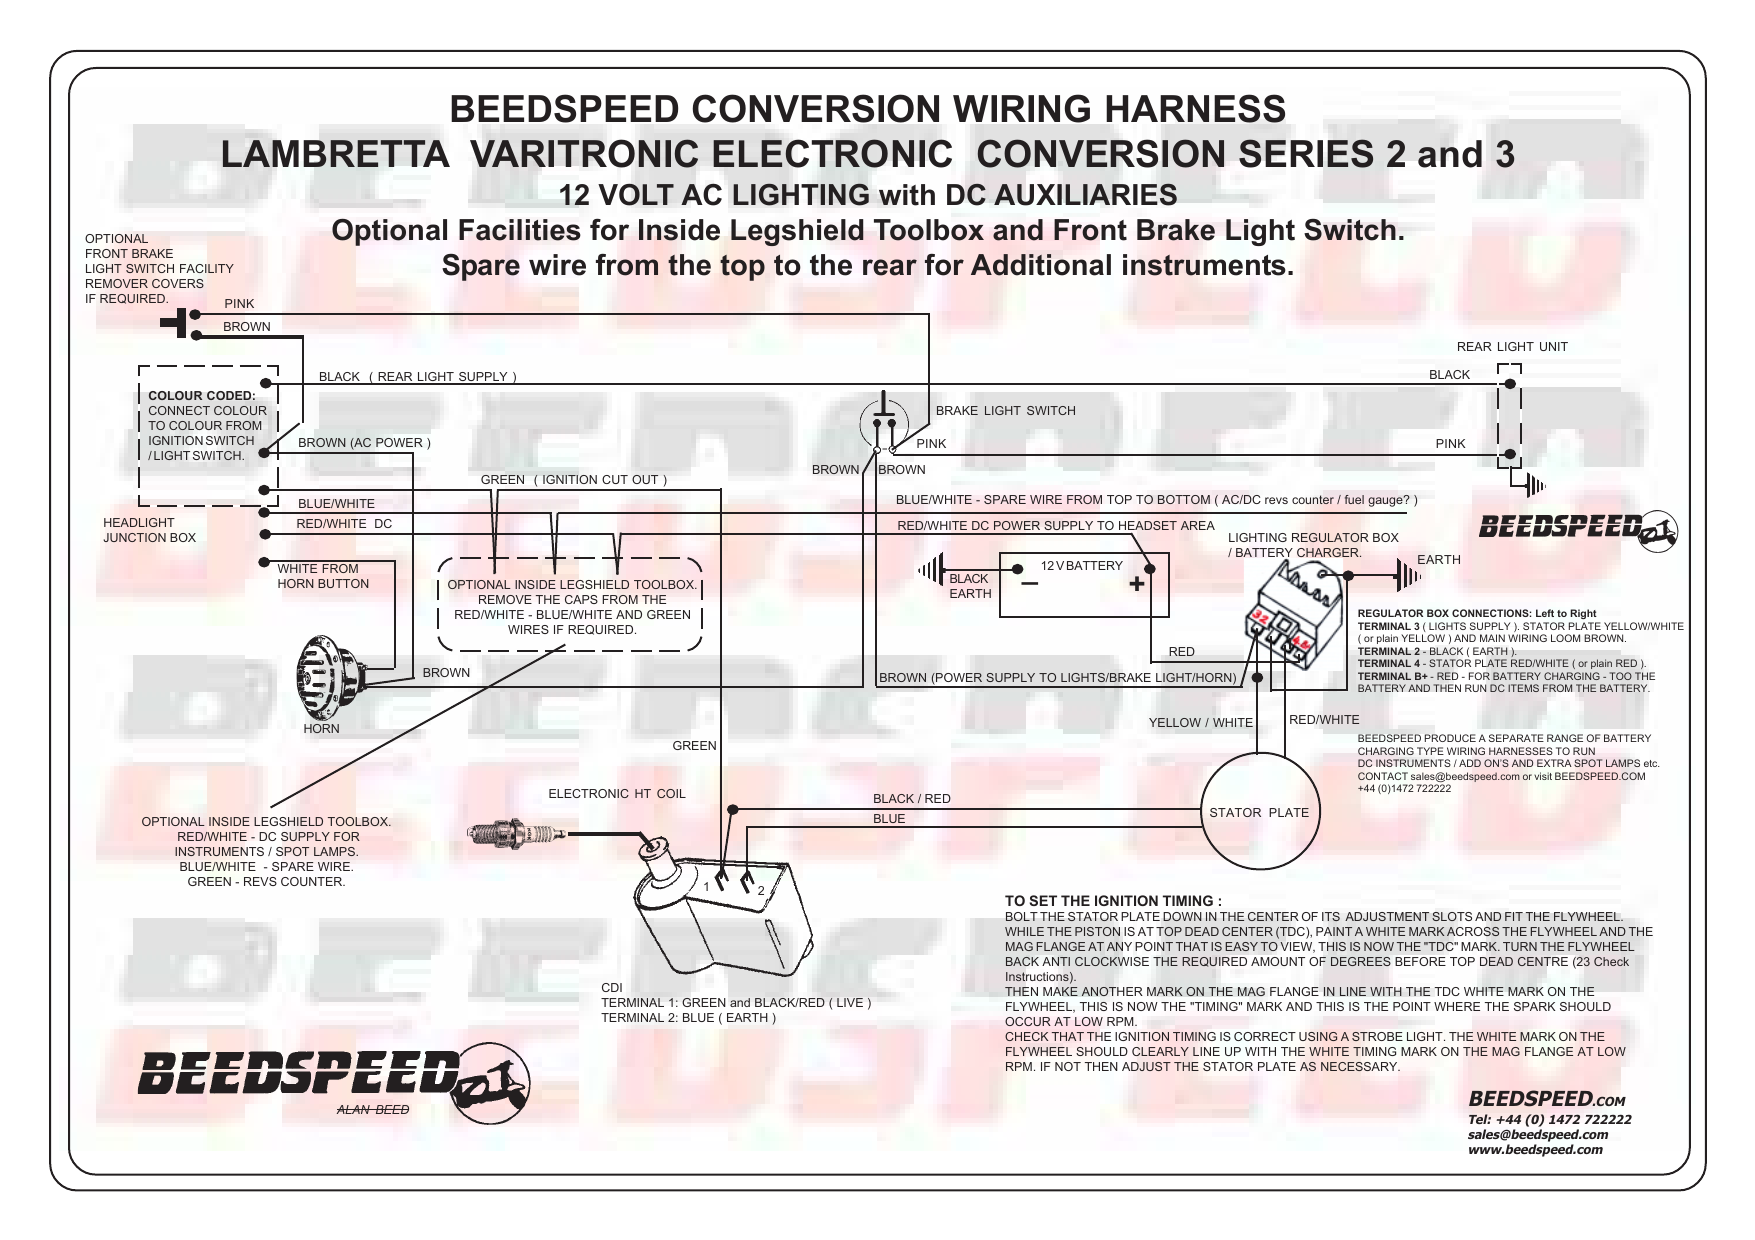 018556260_1 b4df7bce7d31e77b7a555d210f5450ac beedspeed conversion wiring harness lambretta lambretta headset wiring diagram at gsmx.co